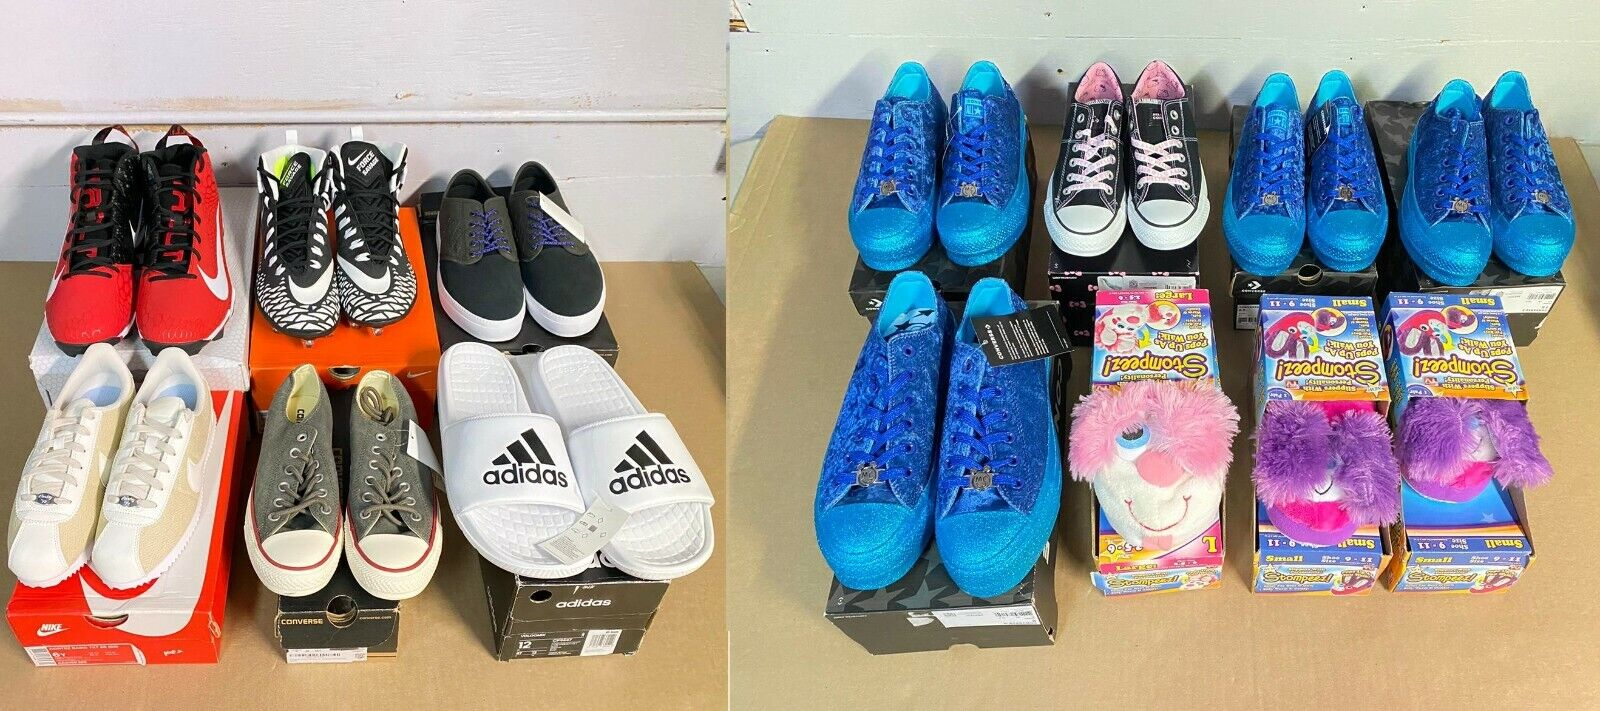 Lot 14 Adidas Converse Nike Resale Shoes Adidas Chuck Taylor Wholesale NWB